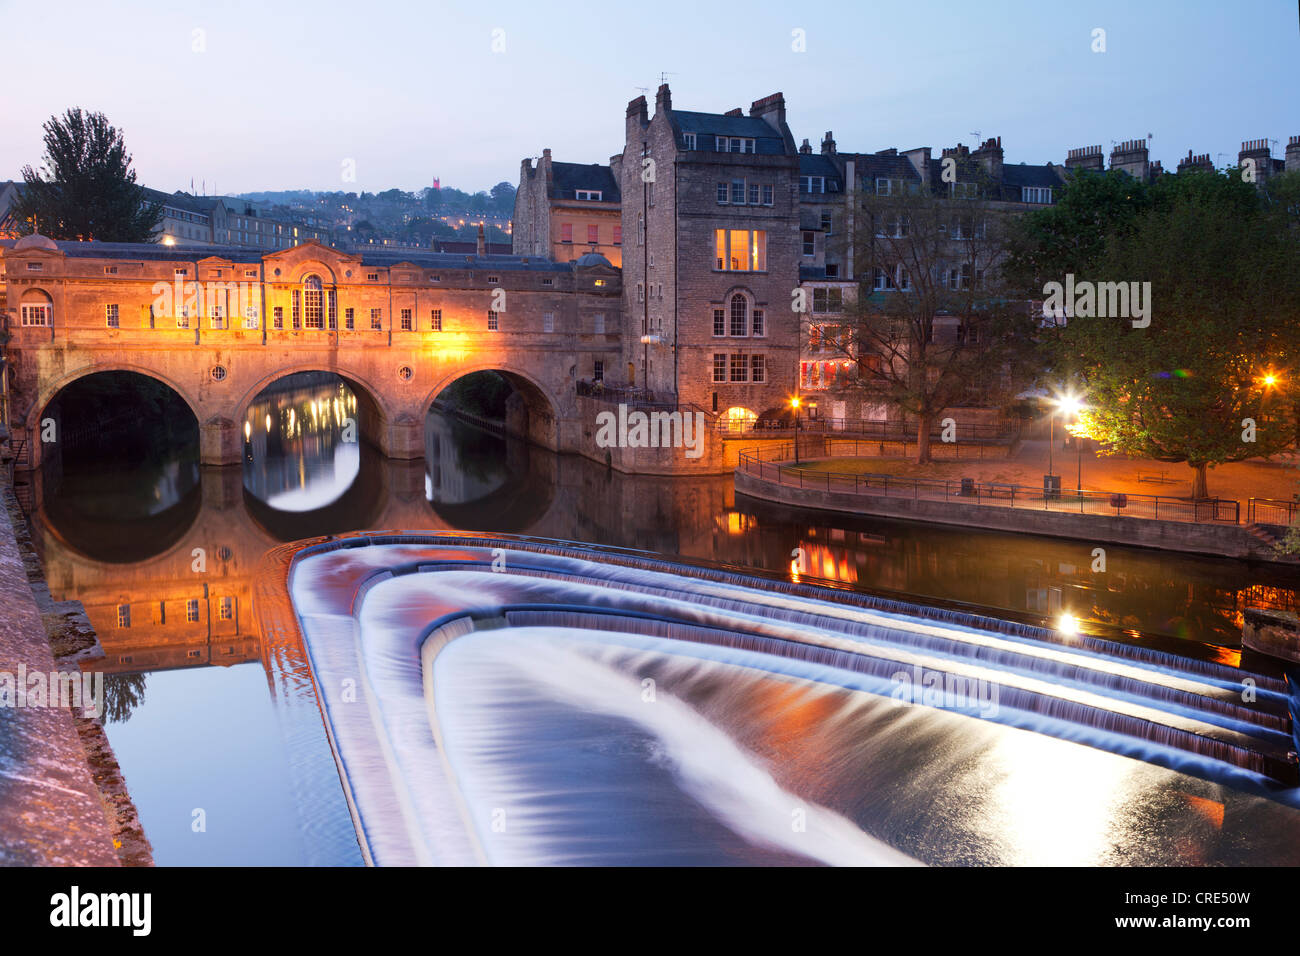 Pulteney Bridge and weir, Bath, England, at twilight. - Stock Image